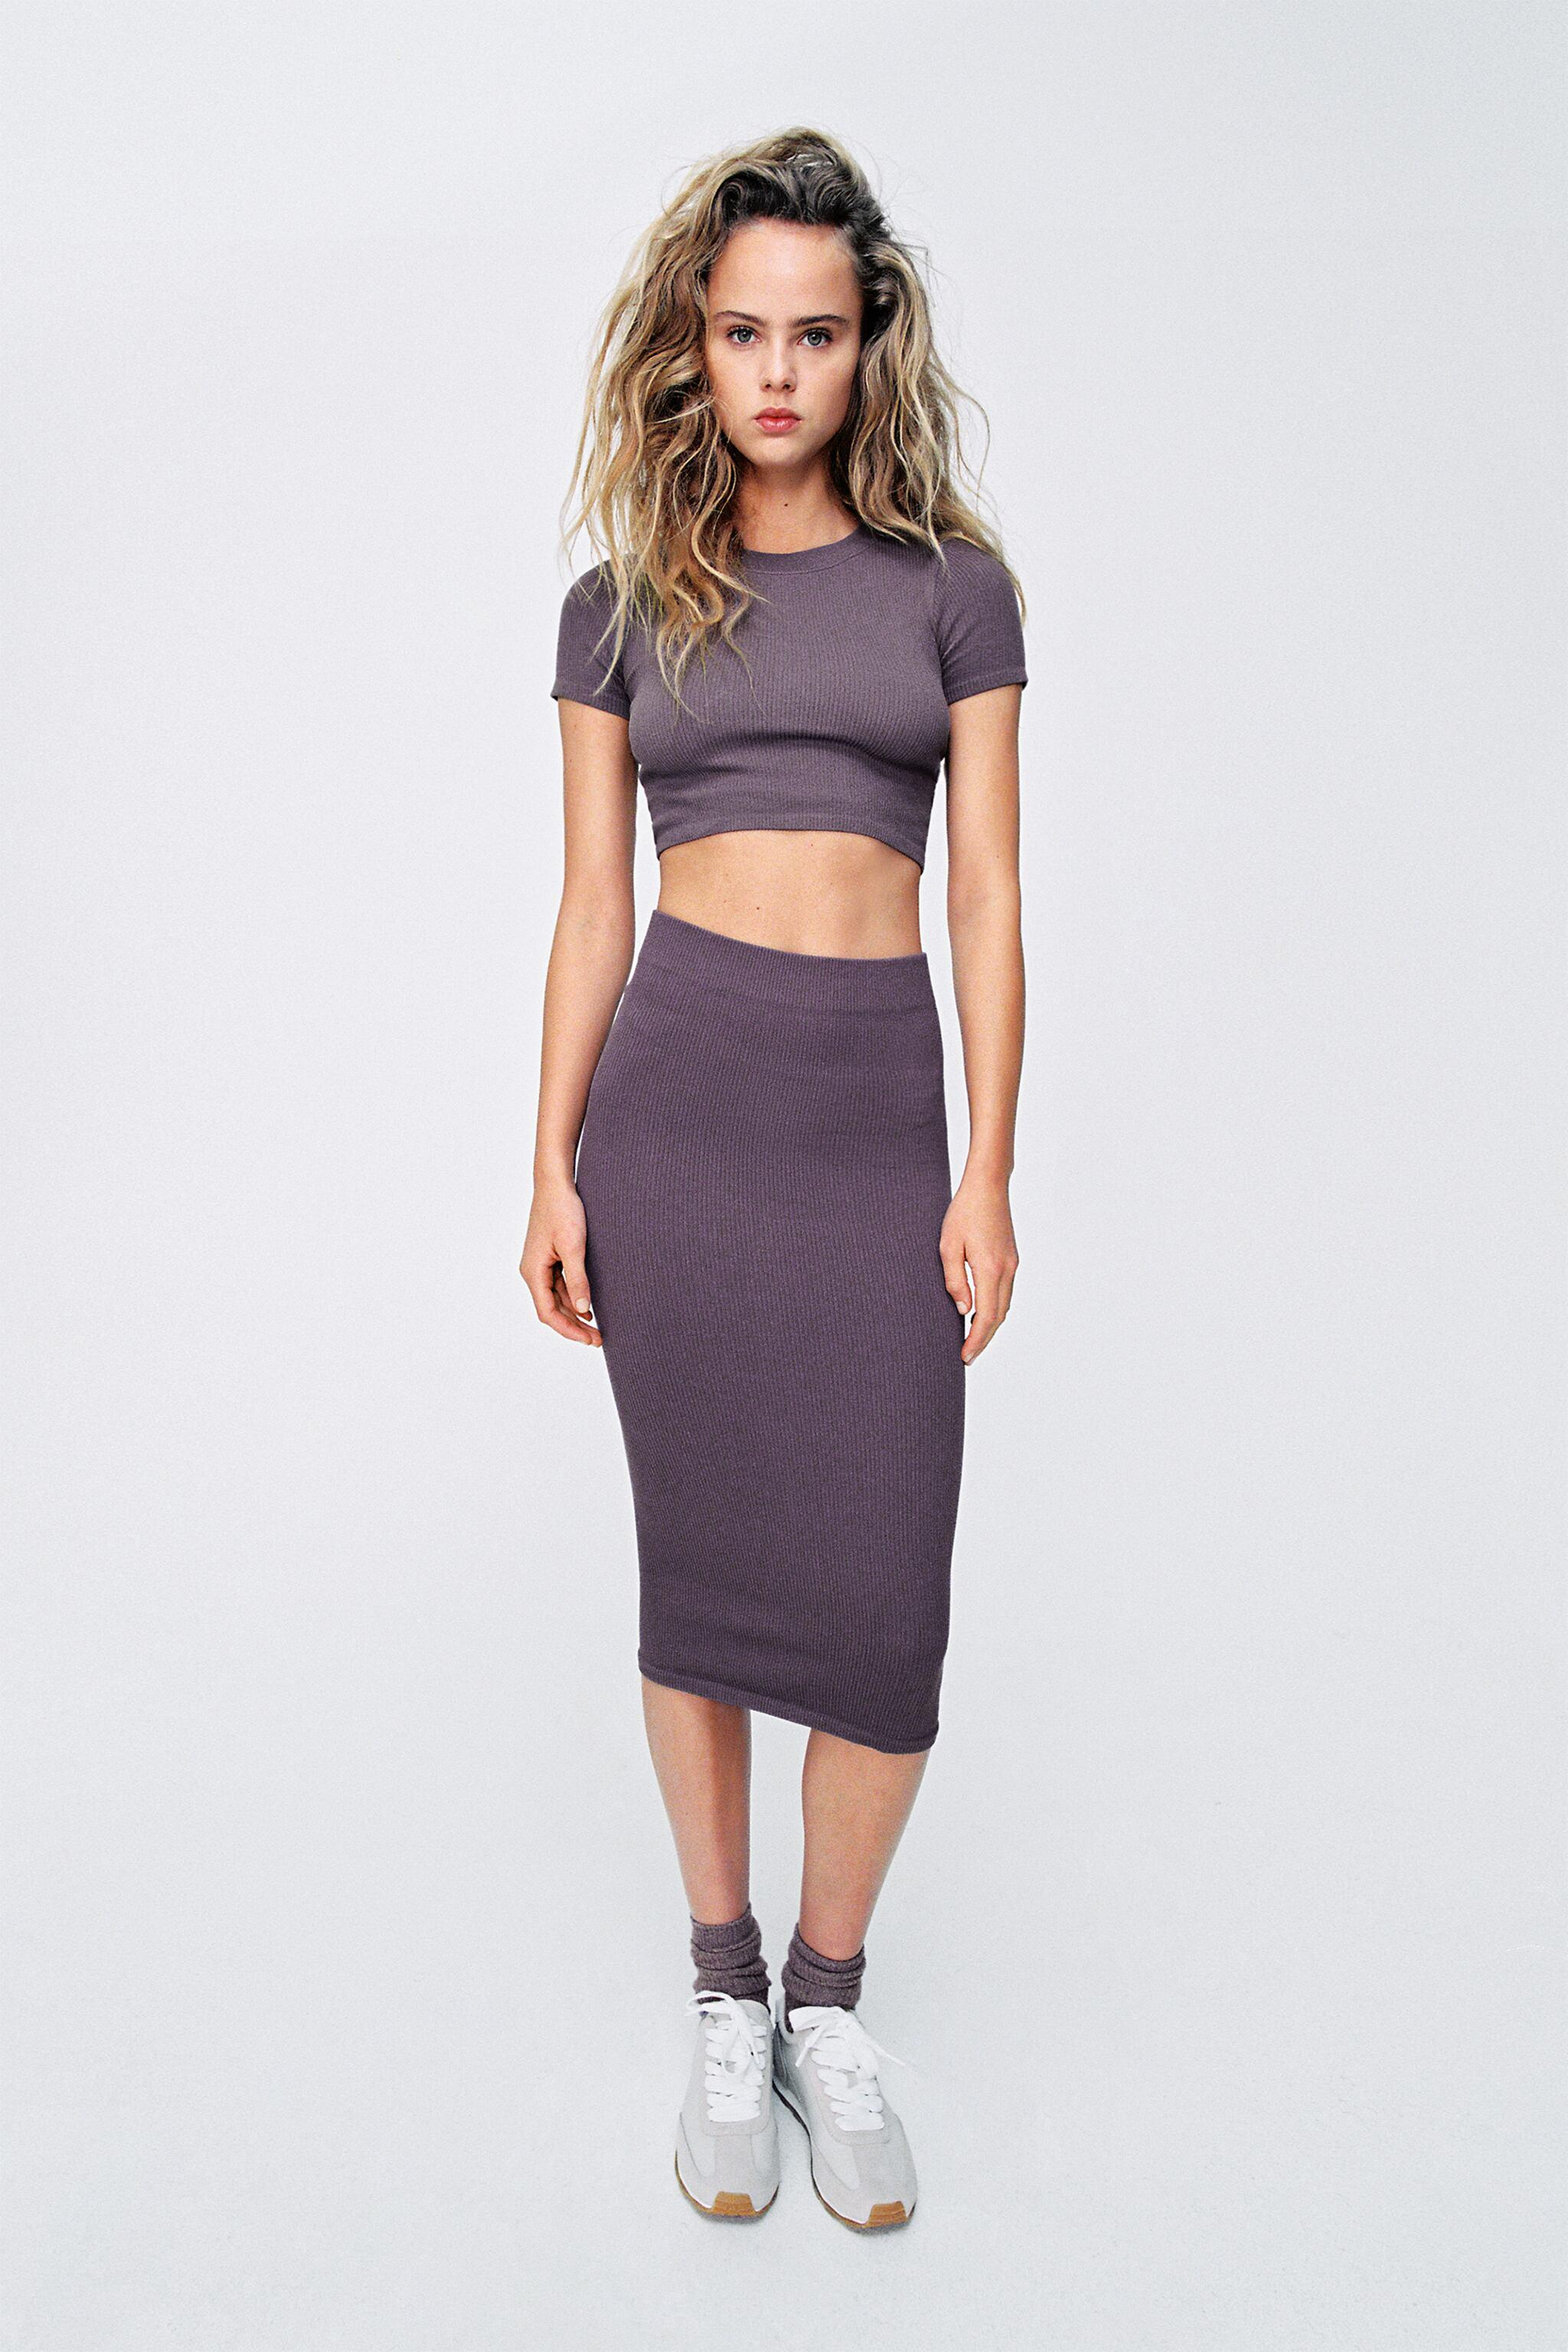 CROPPED TOP LIMITLESS CONTOUR COLLECTION